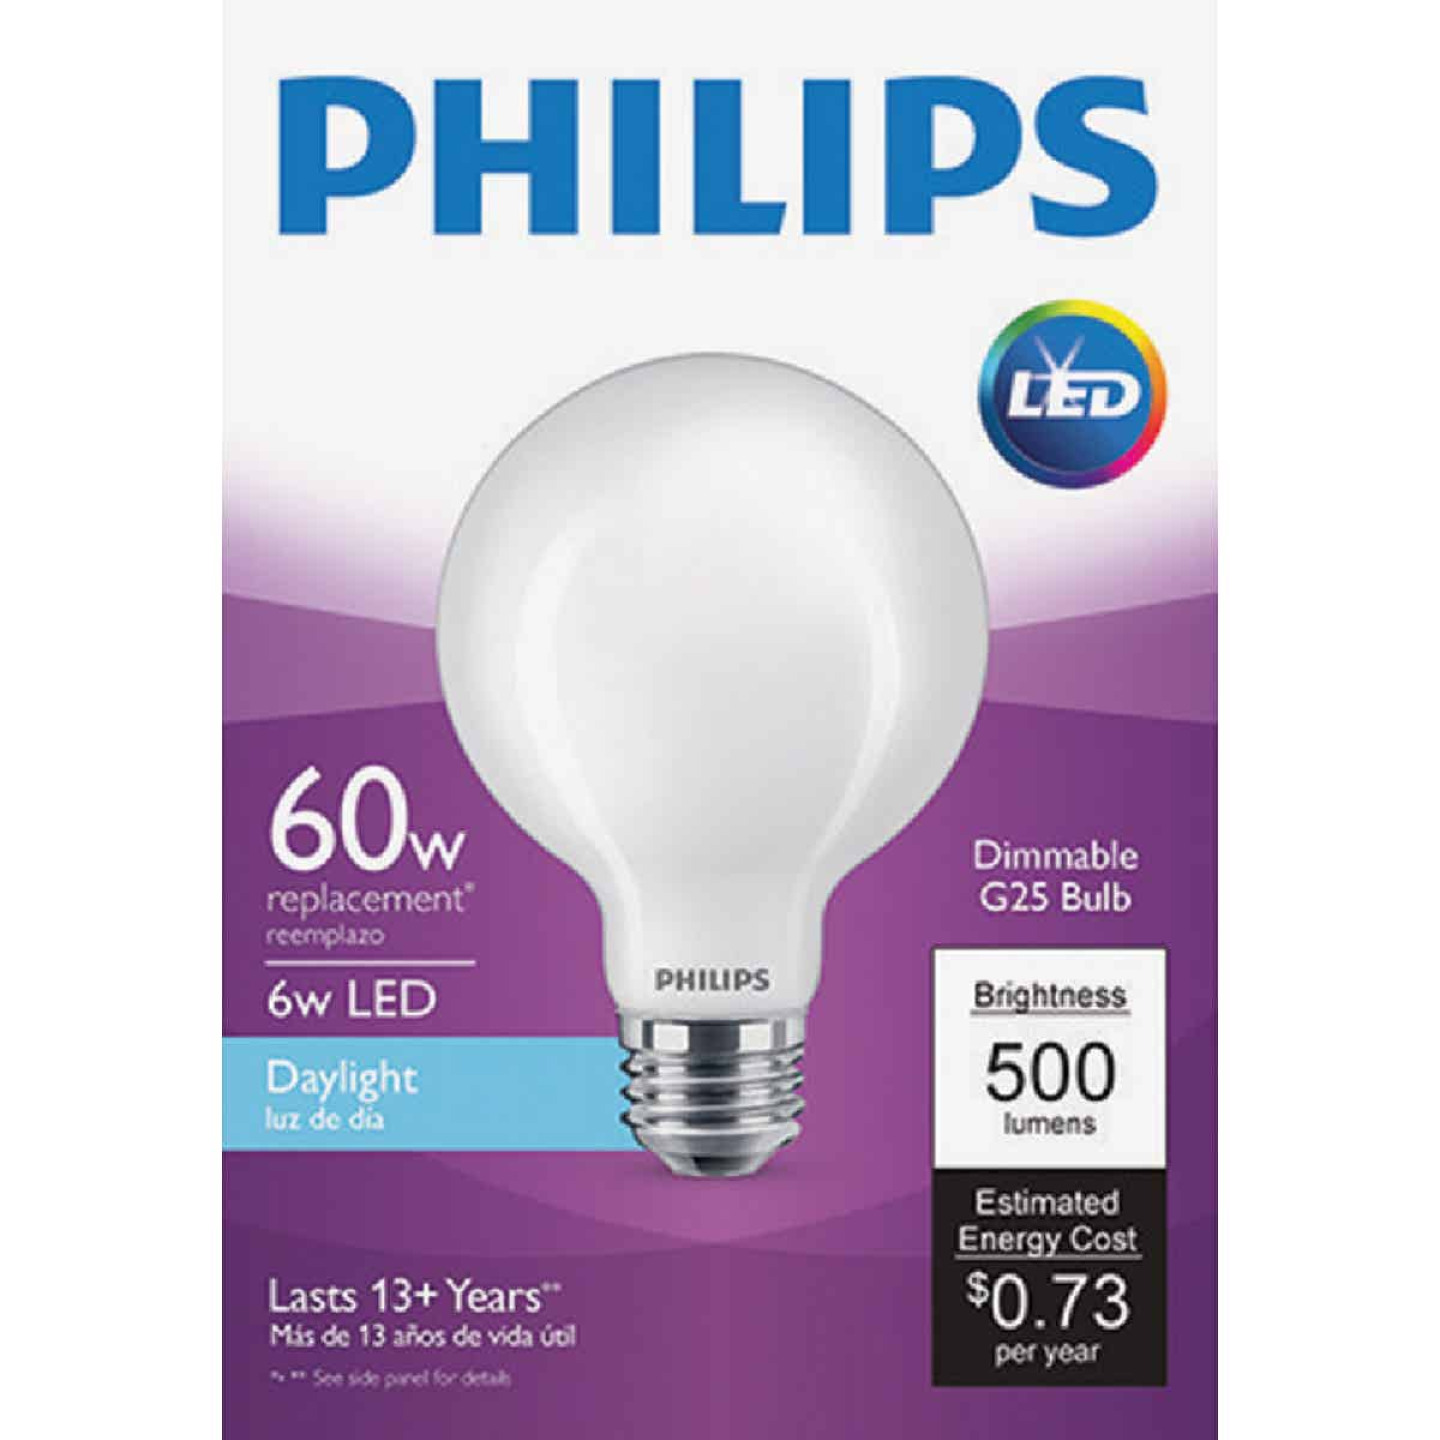 Philips 60W Equivalent Daylight G25 Medium Frosted LED Decorative Light Bulb Image 1